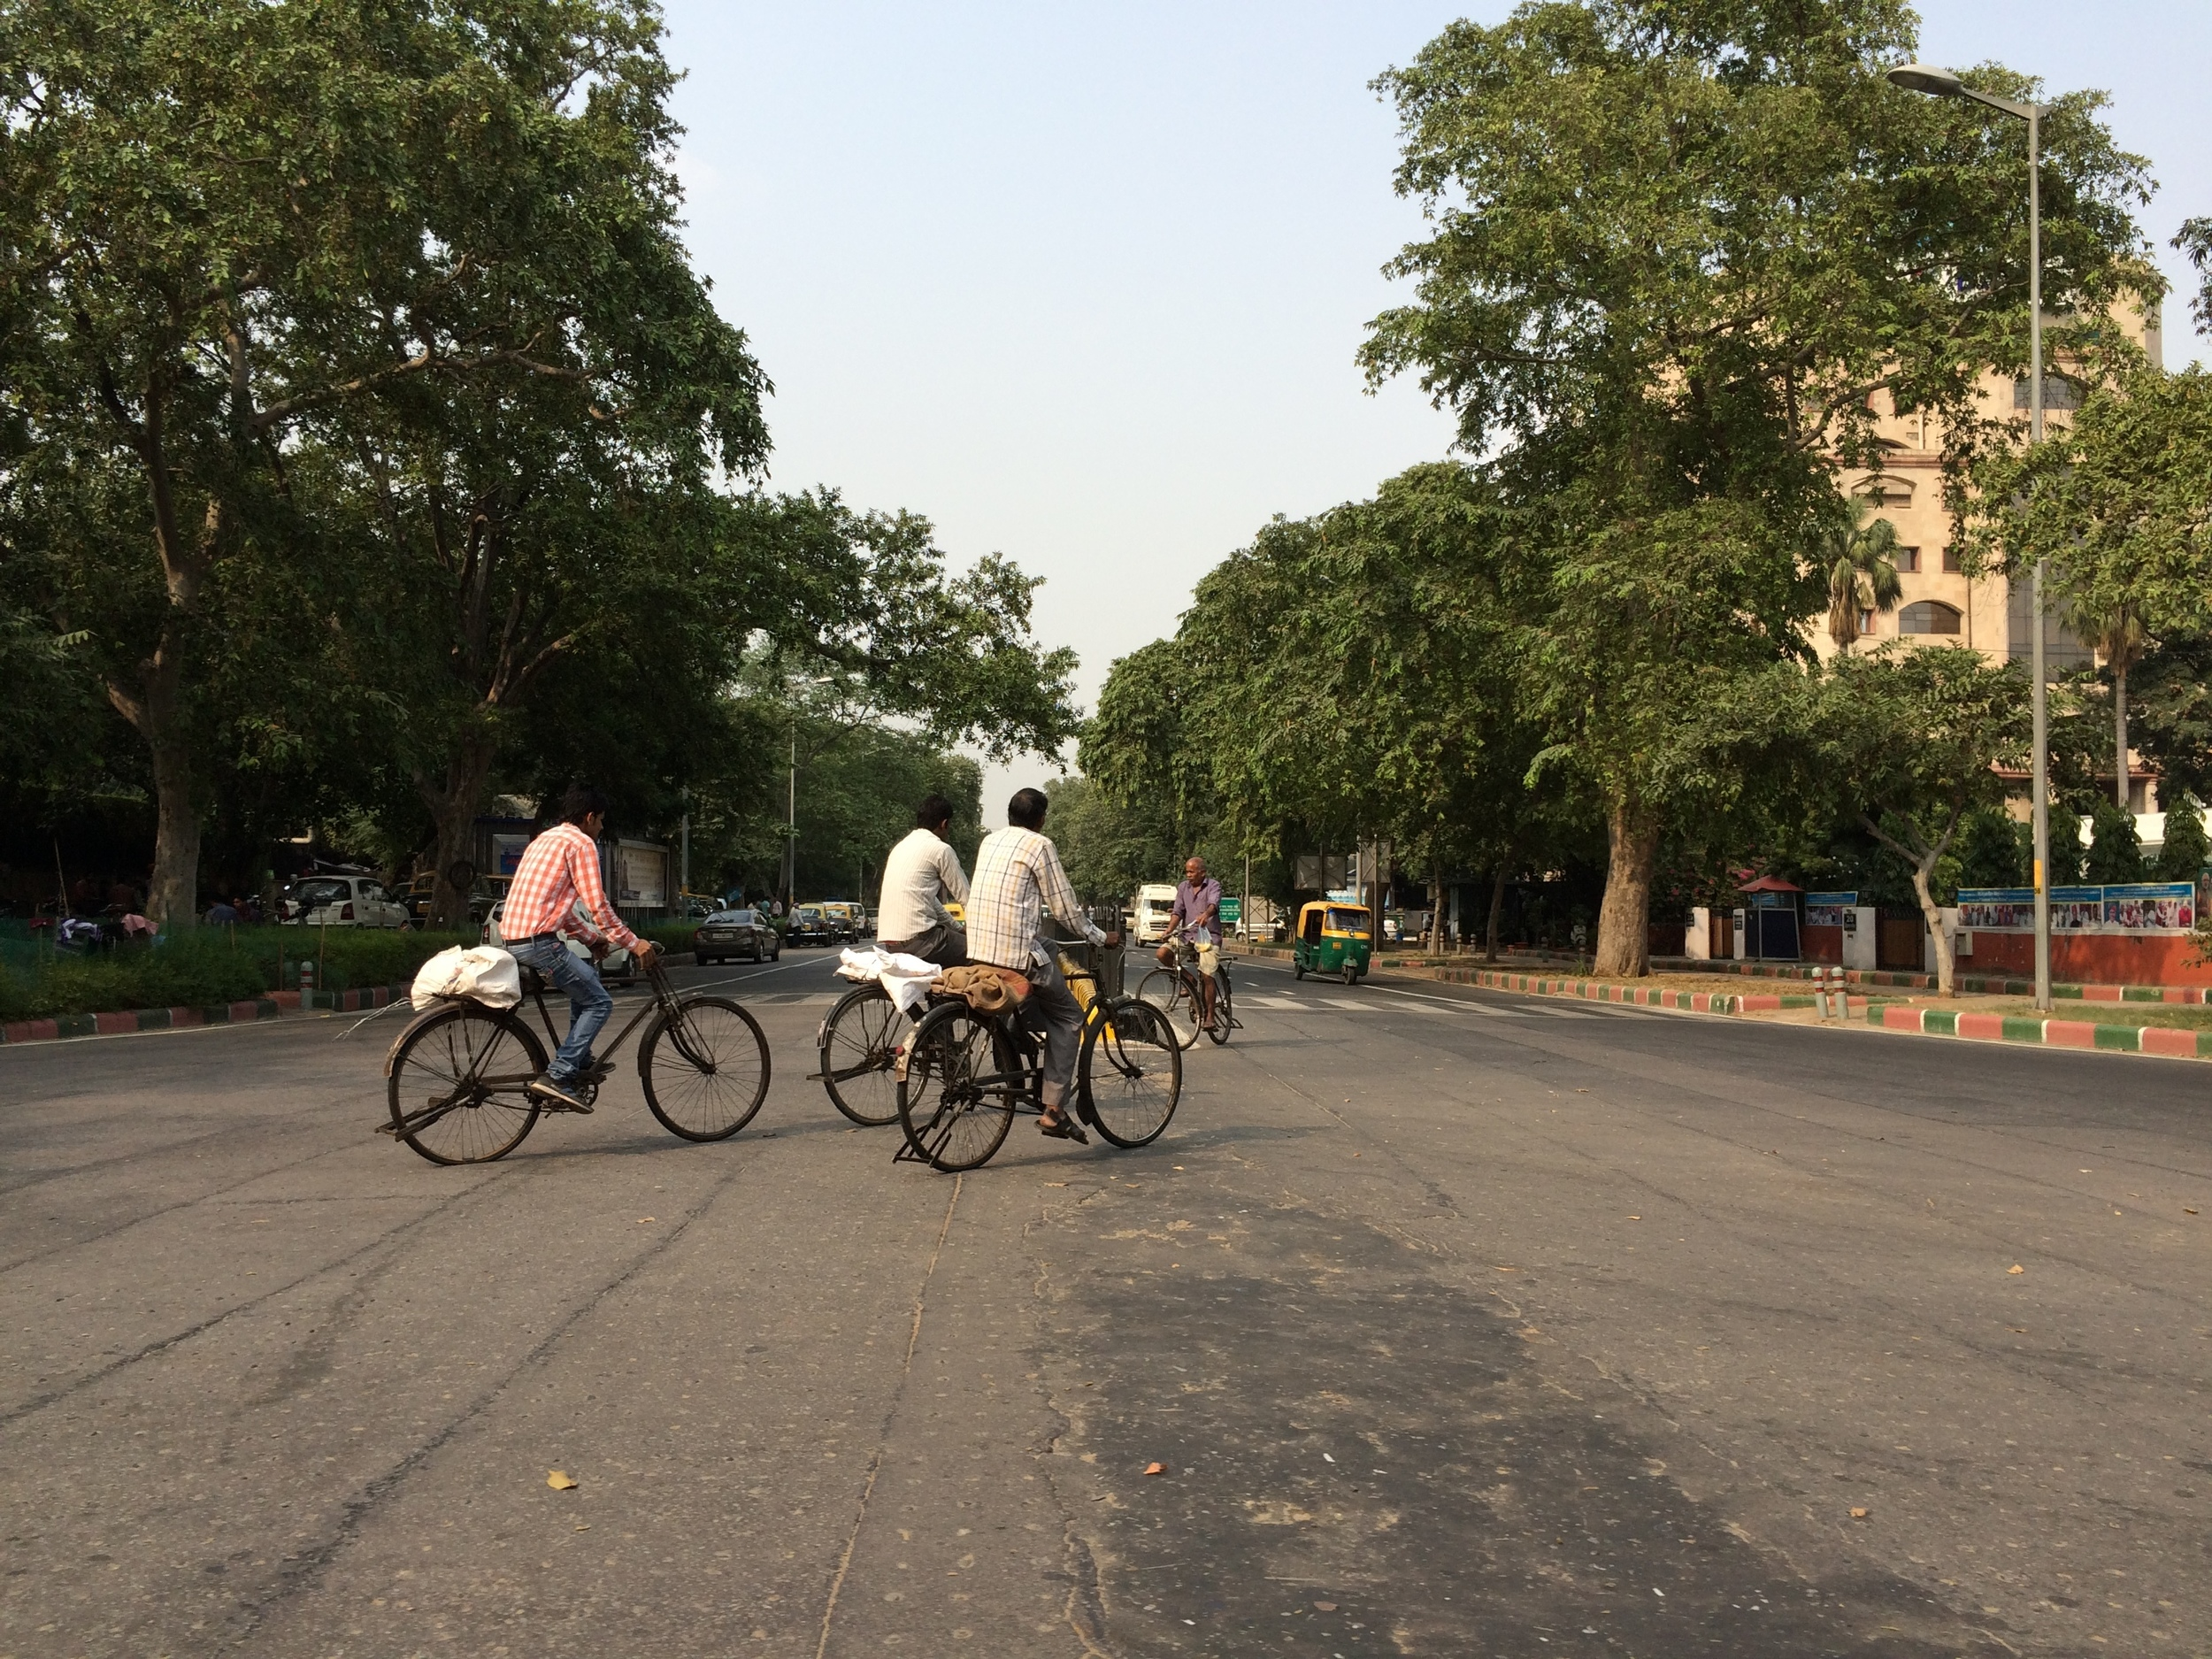 Bicycles on the streets of New Delhi